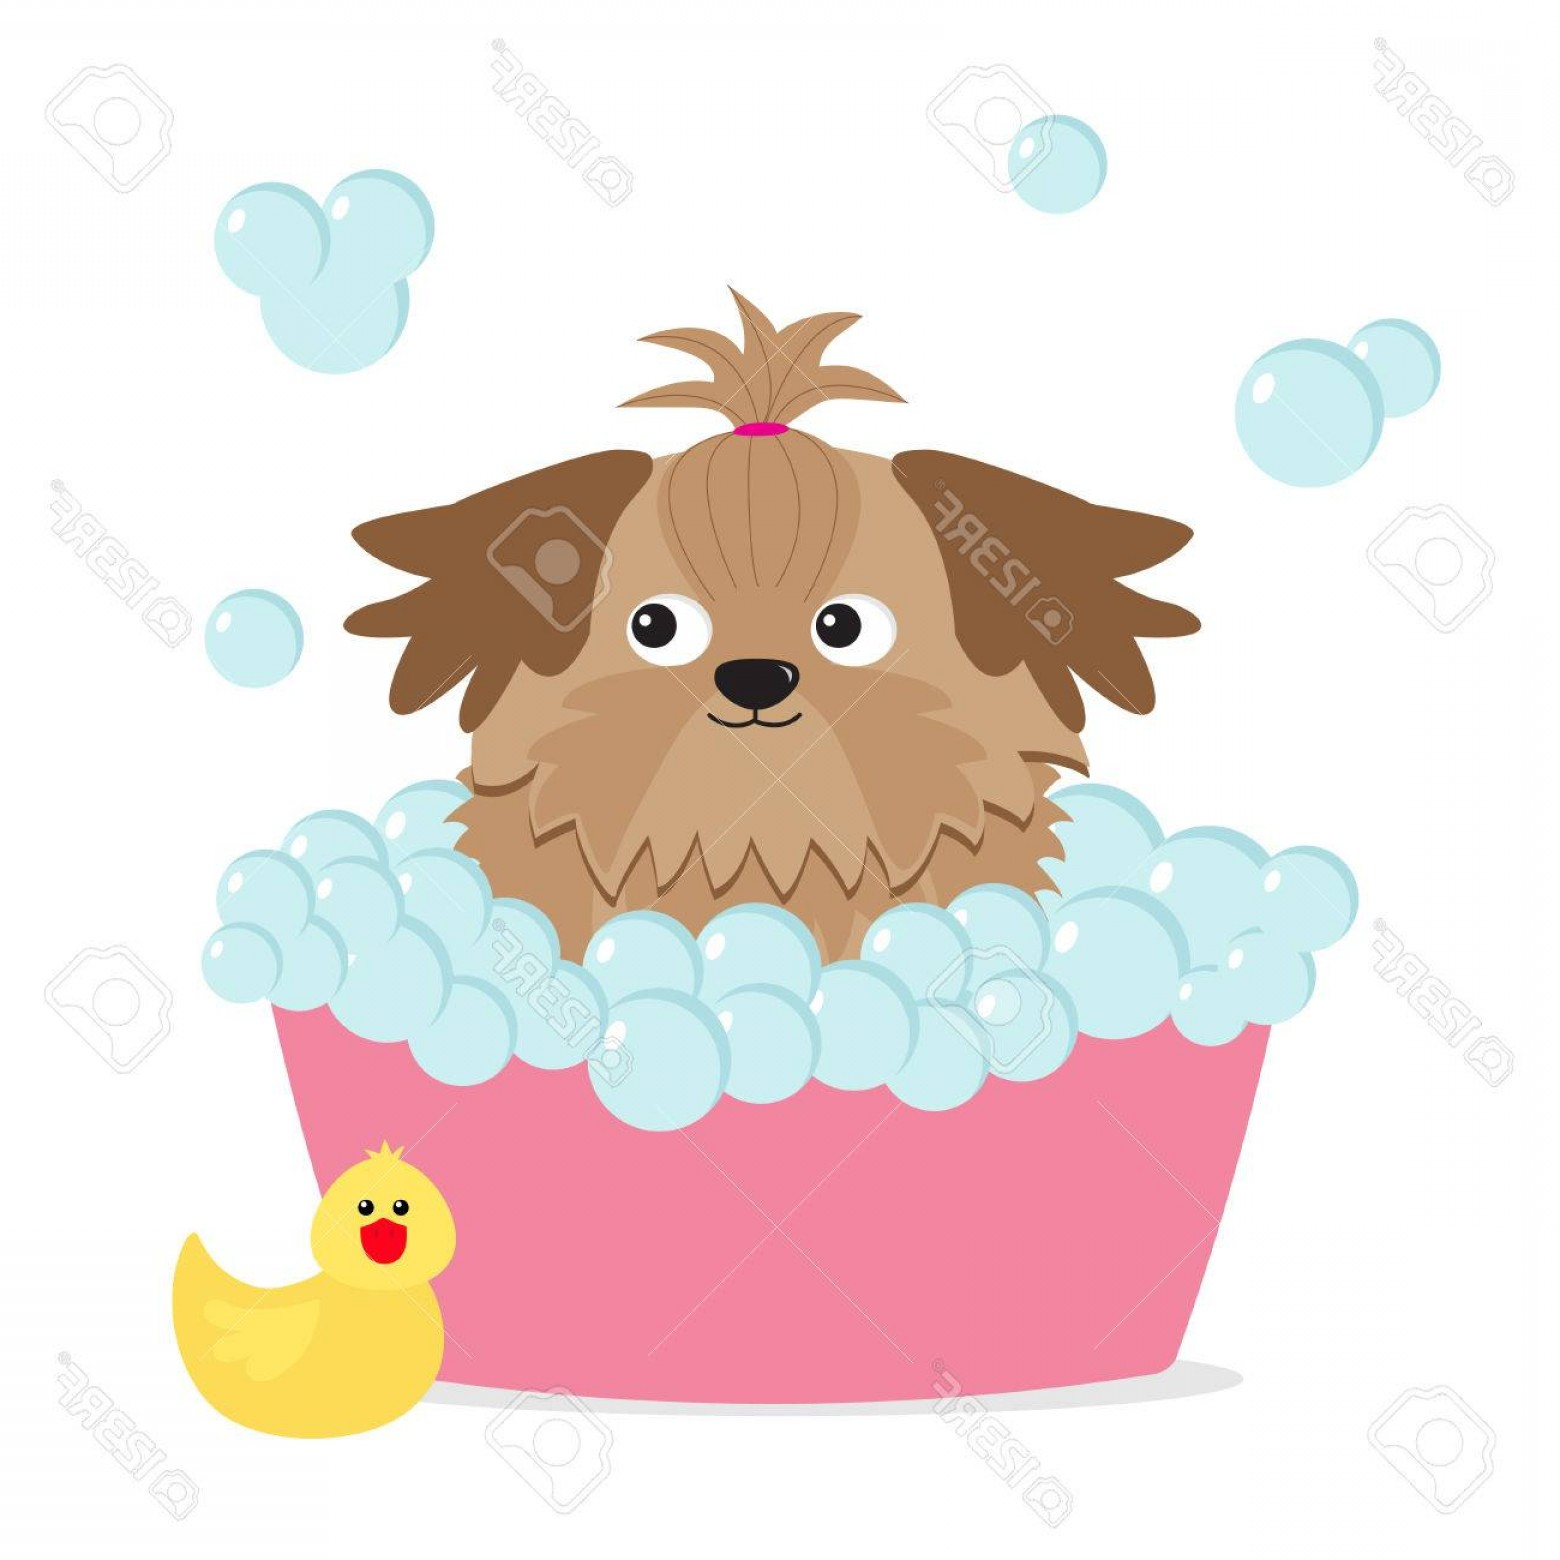 Dog Bubble Bath Vector: Adorable Photostock Vector Little Glamour Tan Shih Tzu Dog Taking A Bubble Bath Yellow Duck Bird Toy Cute Cartoon Baby Characte